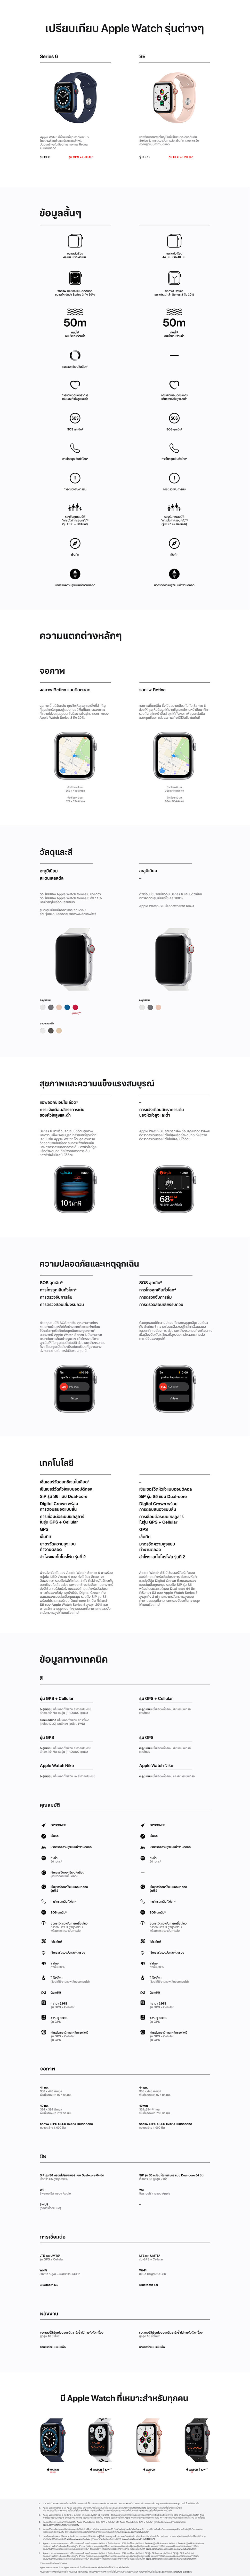 apple_watch_s6_se_cell_compare.jpg